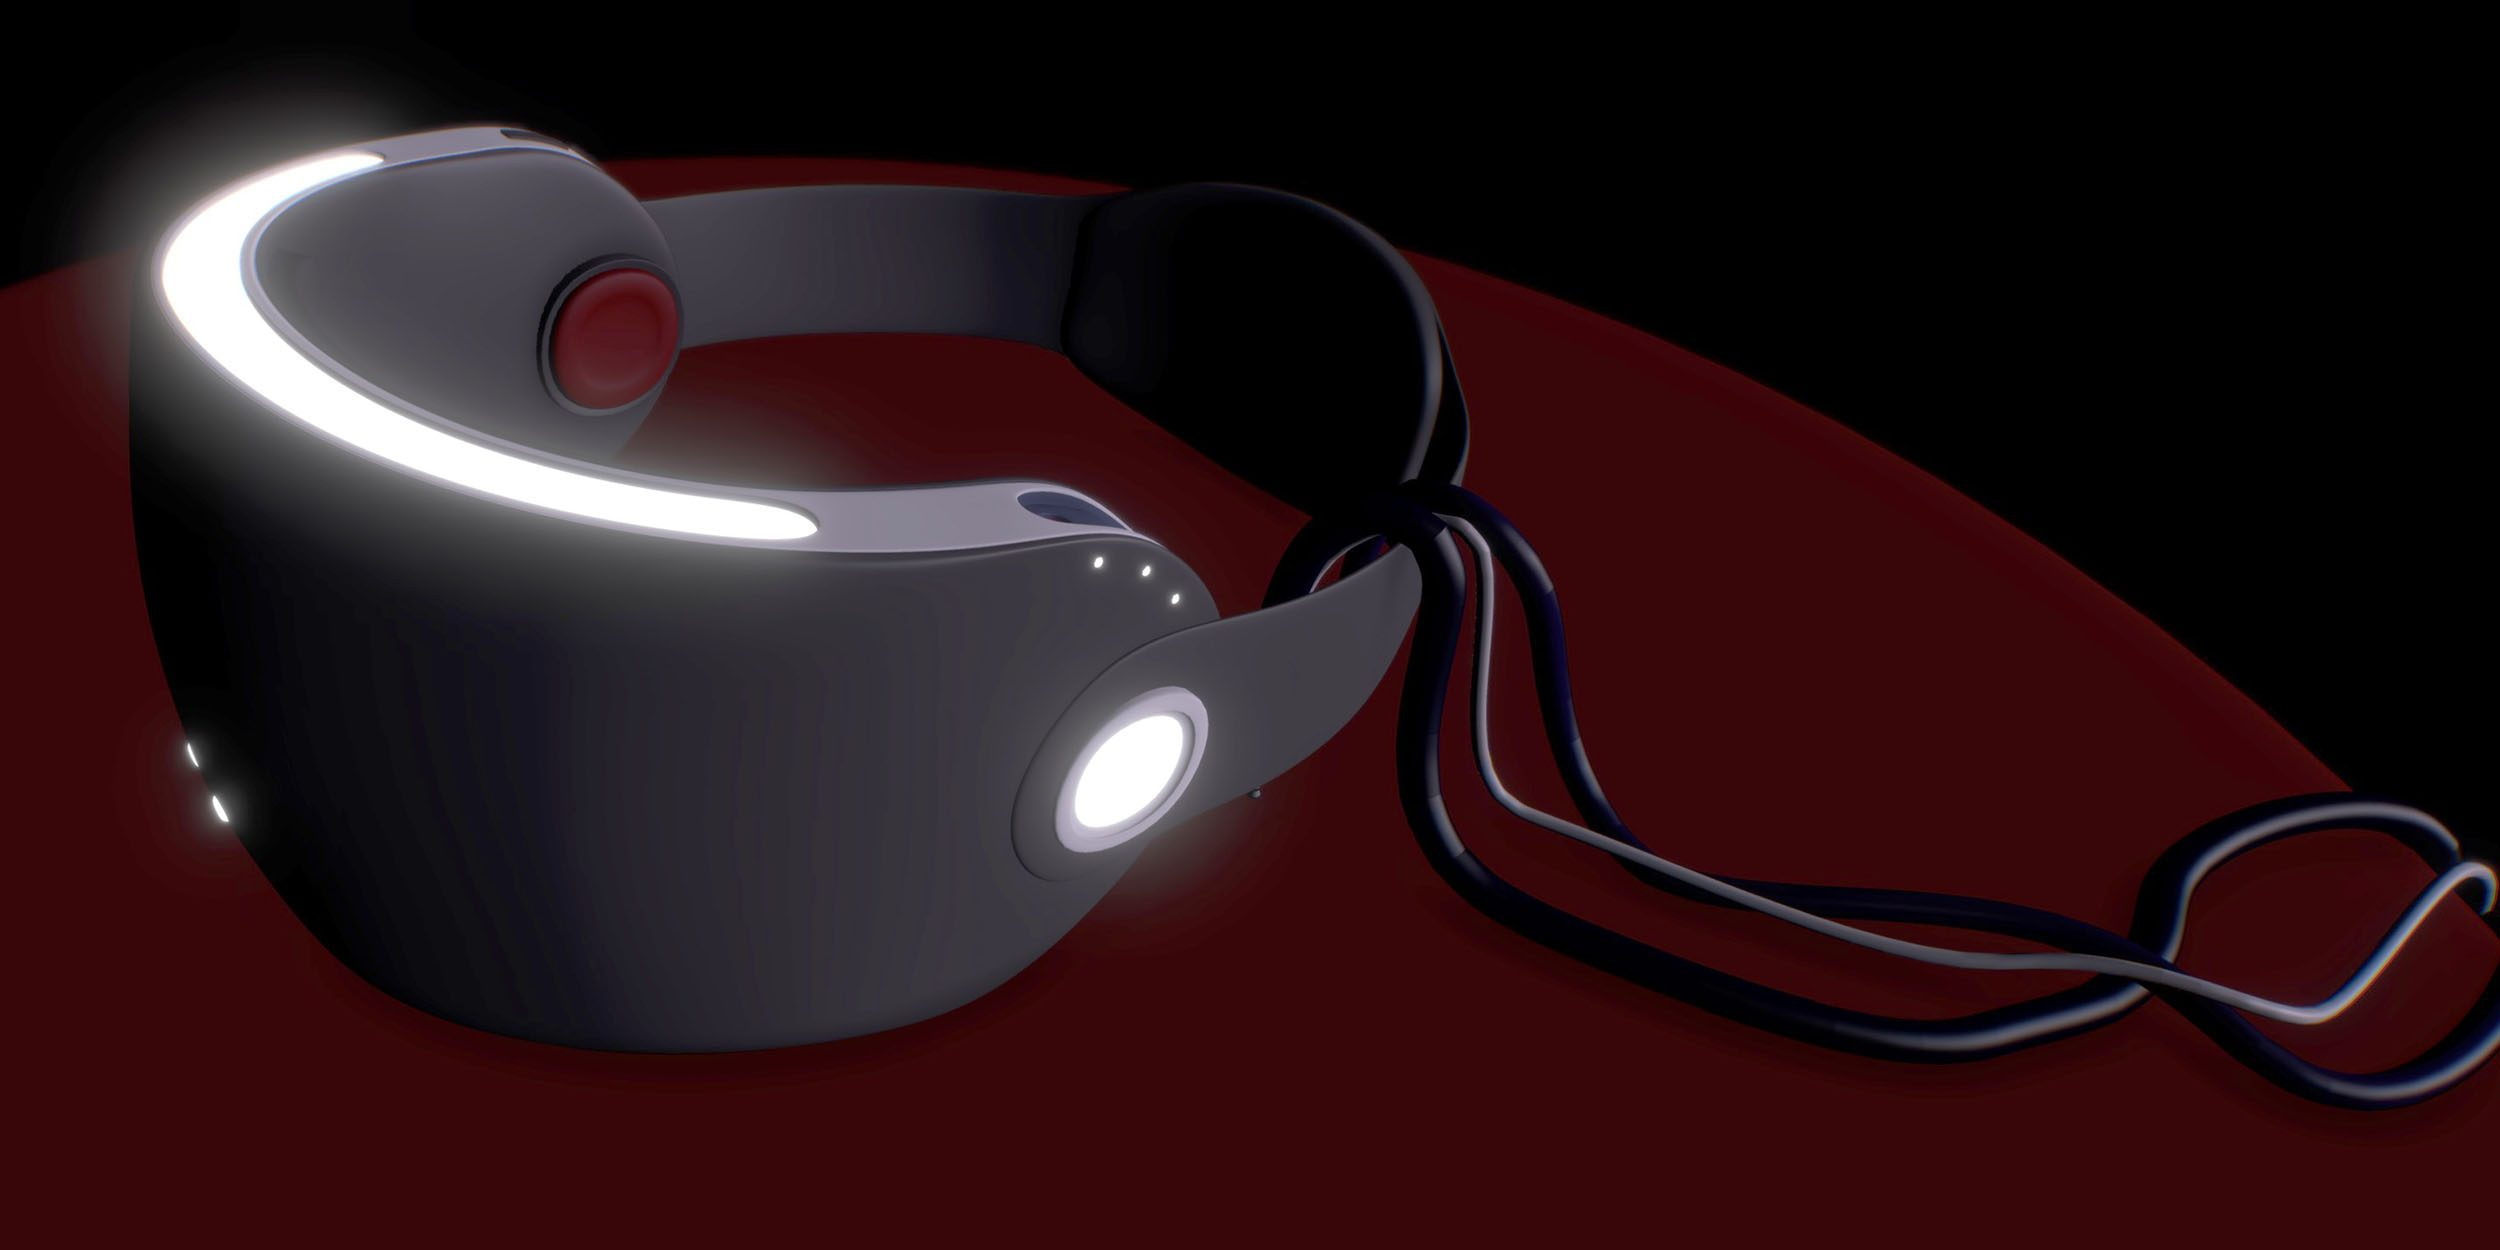 Apples-first-headset-will-be-VR-not-AR-says-Bloomberg